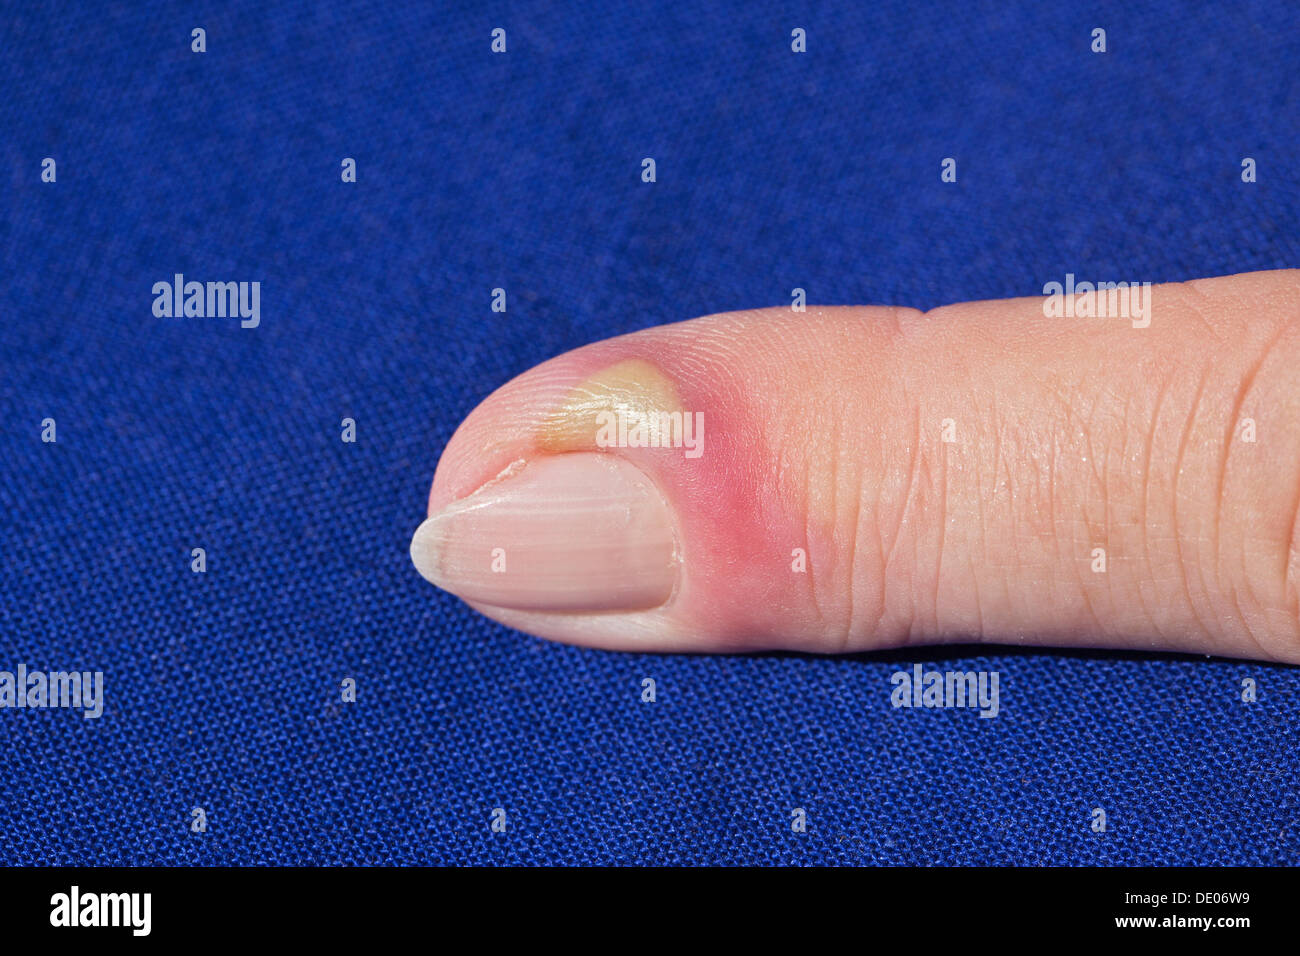 Bacterial infection, inflammation, index finger, pus, abscess - Stock Image